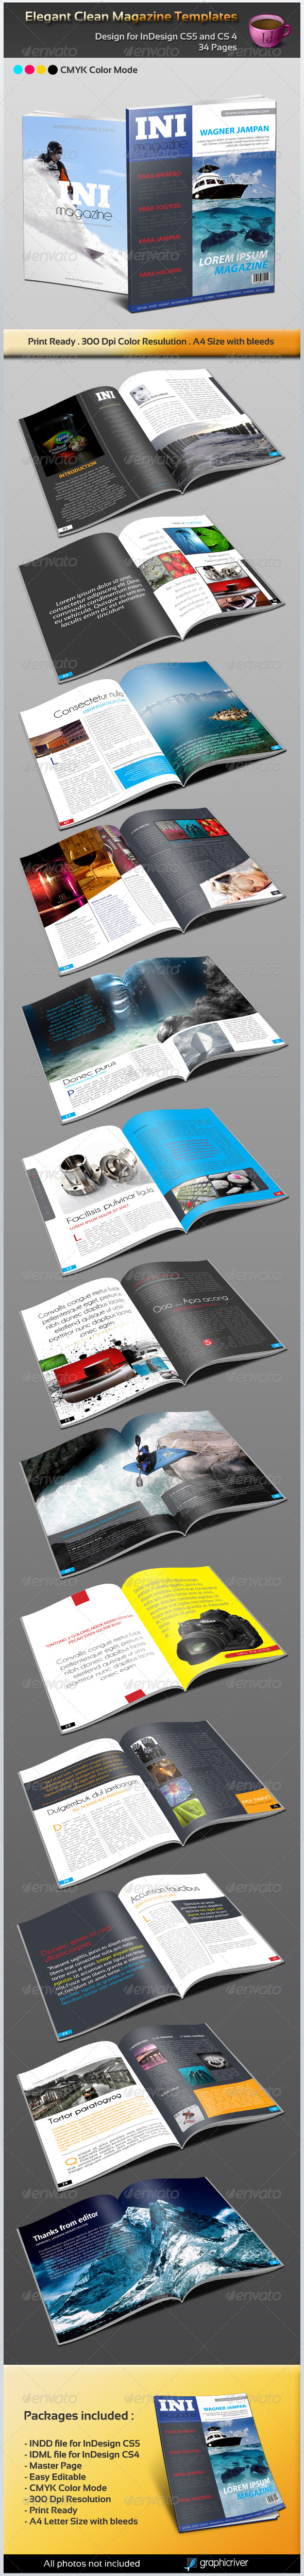 GraphicRiver Elegant Clean Magazine Template 1631219